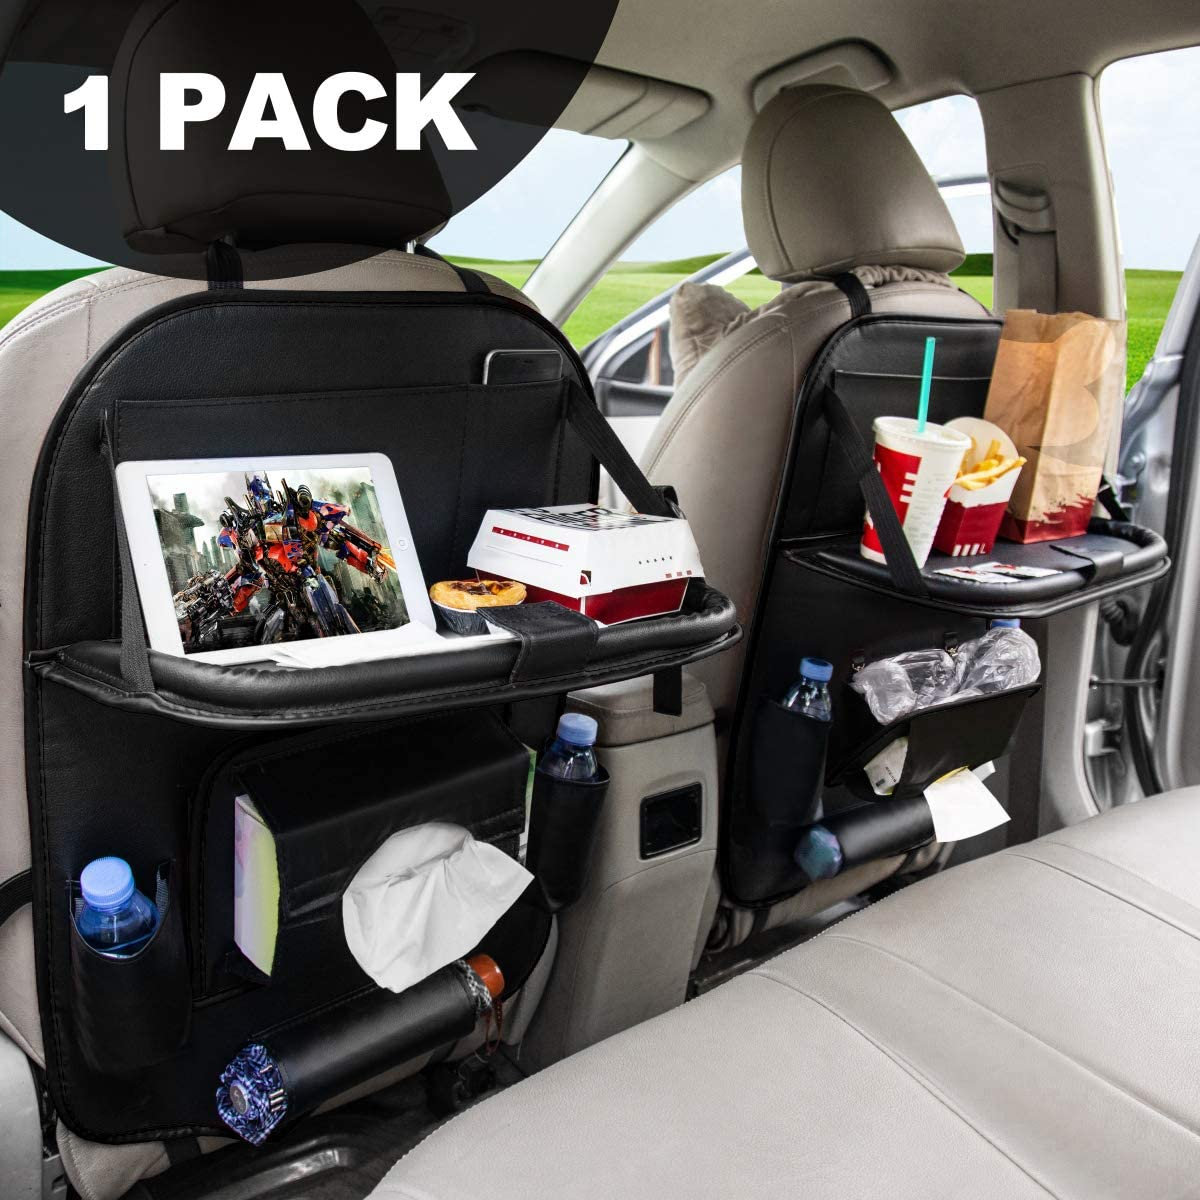 Car Backseat Organizers, Back Seat Organizer with Tray and Storage Leather for Kids Toy Bottle Drink Vehicles Travel AccessoriesFLY Ocean (Black 1 Pack)